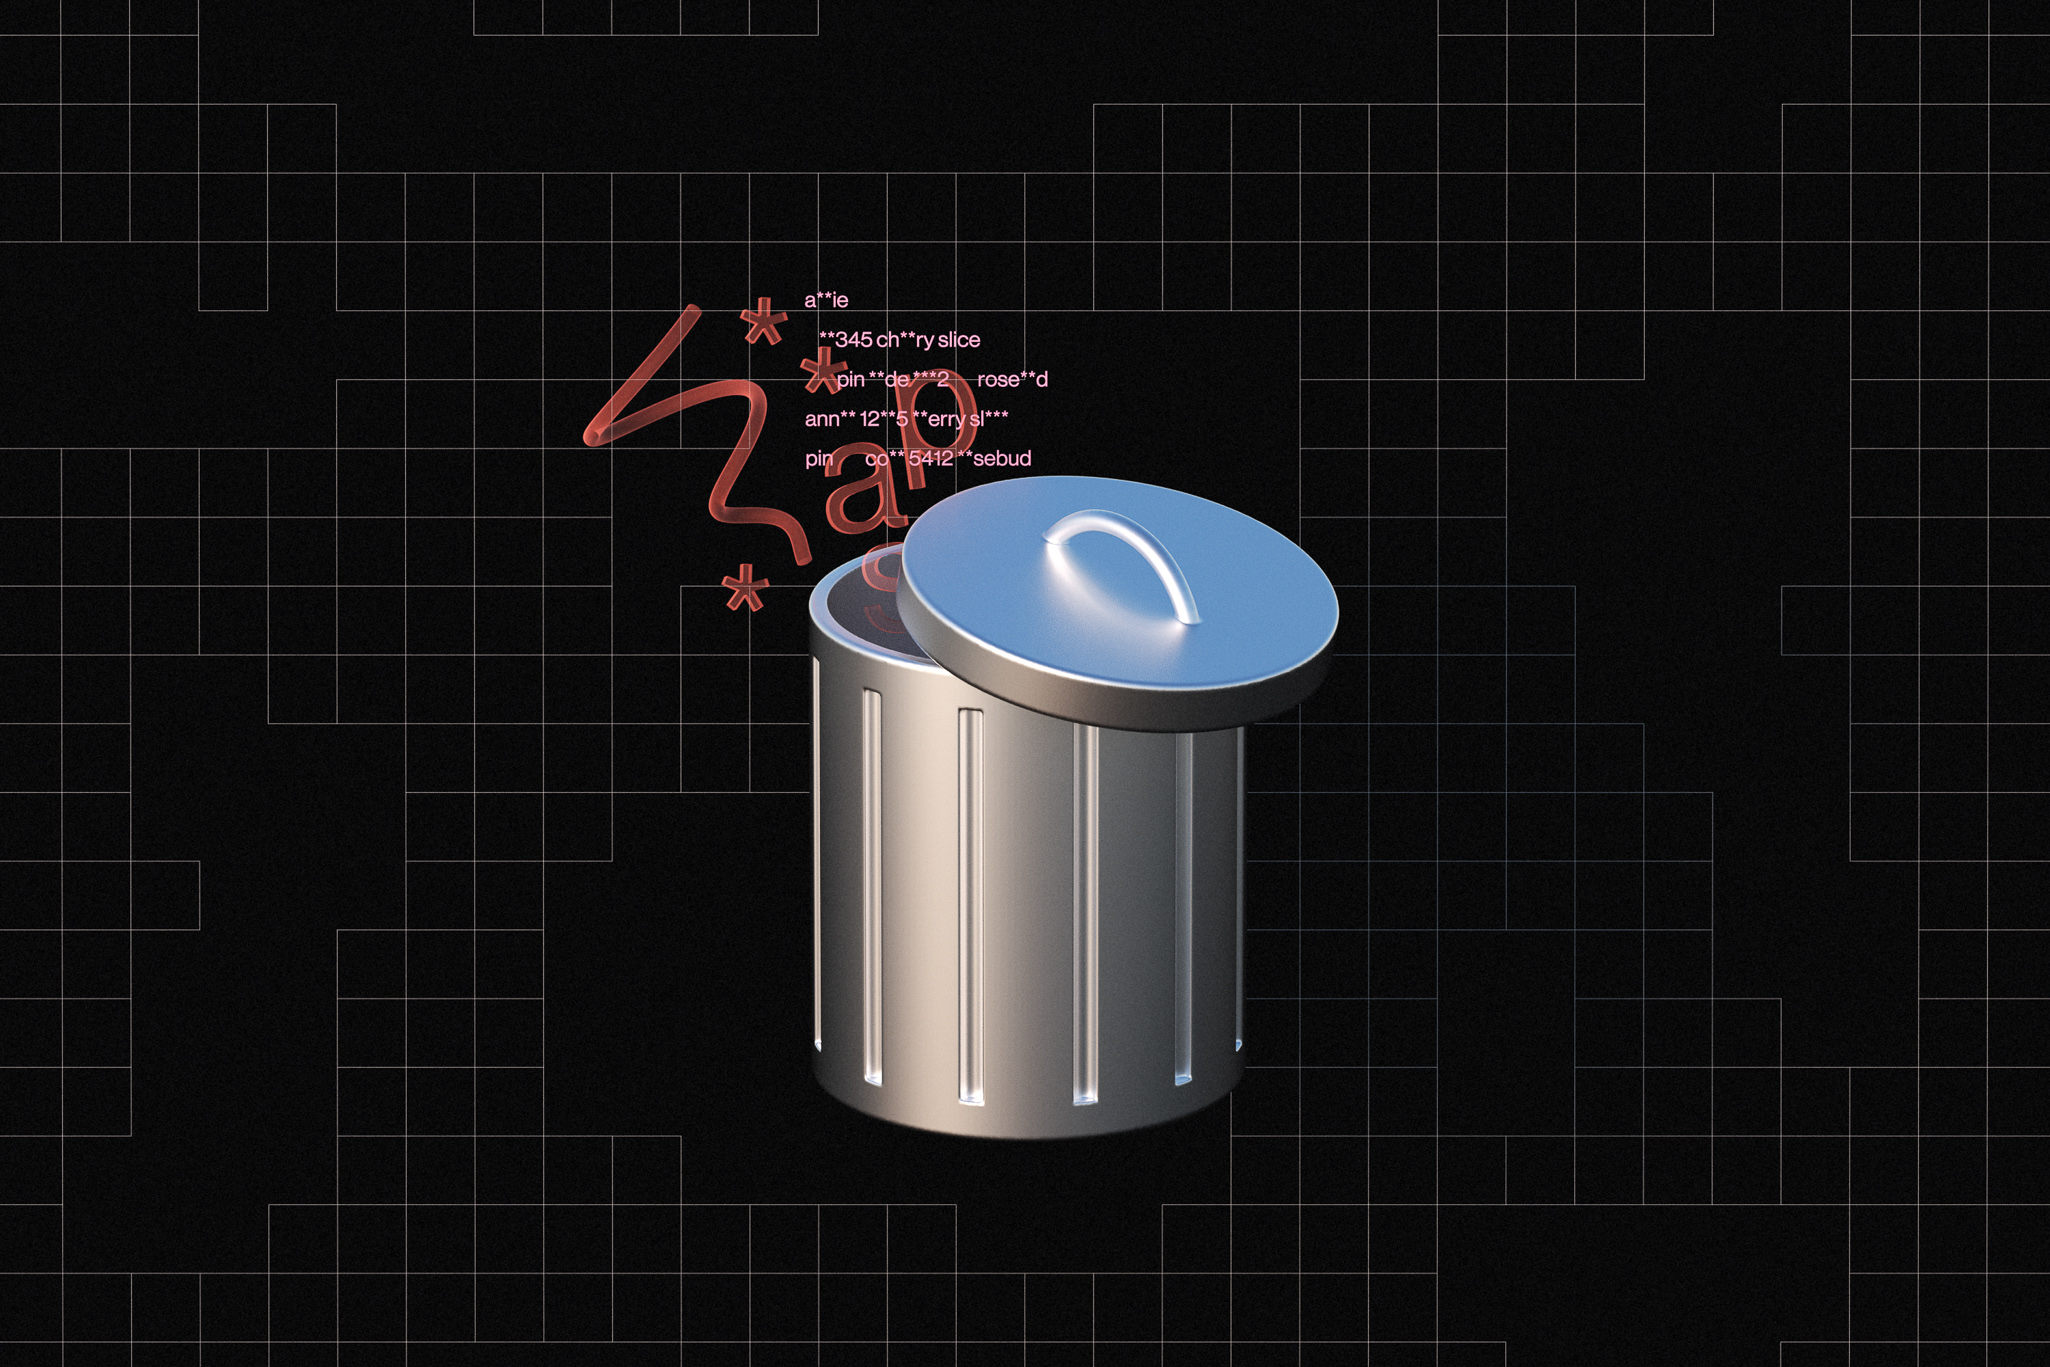 An illustration of personal information in the form of pins and passwords leaking out of a trashcan.